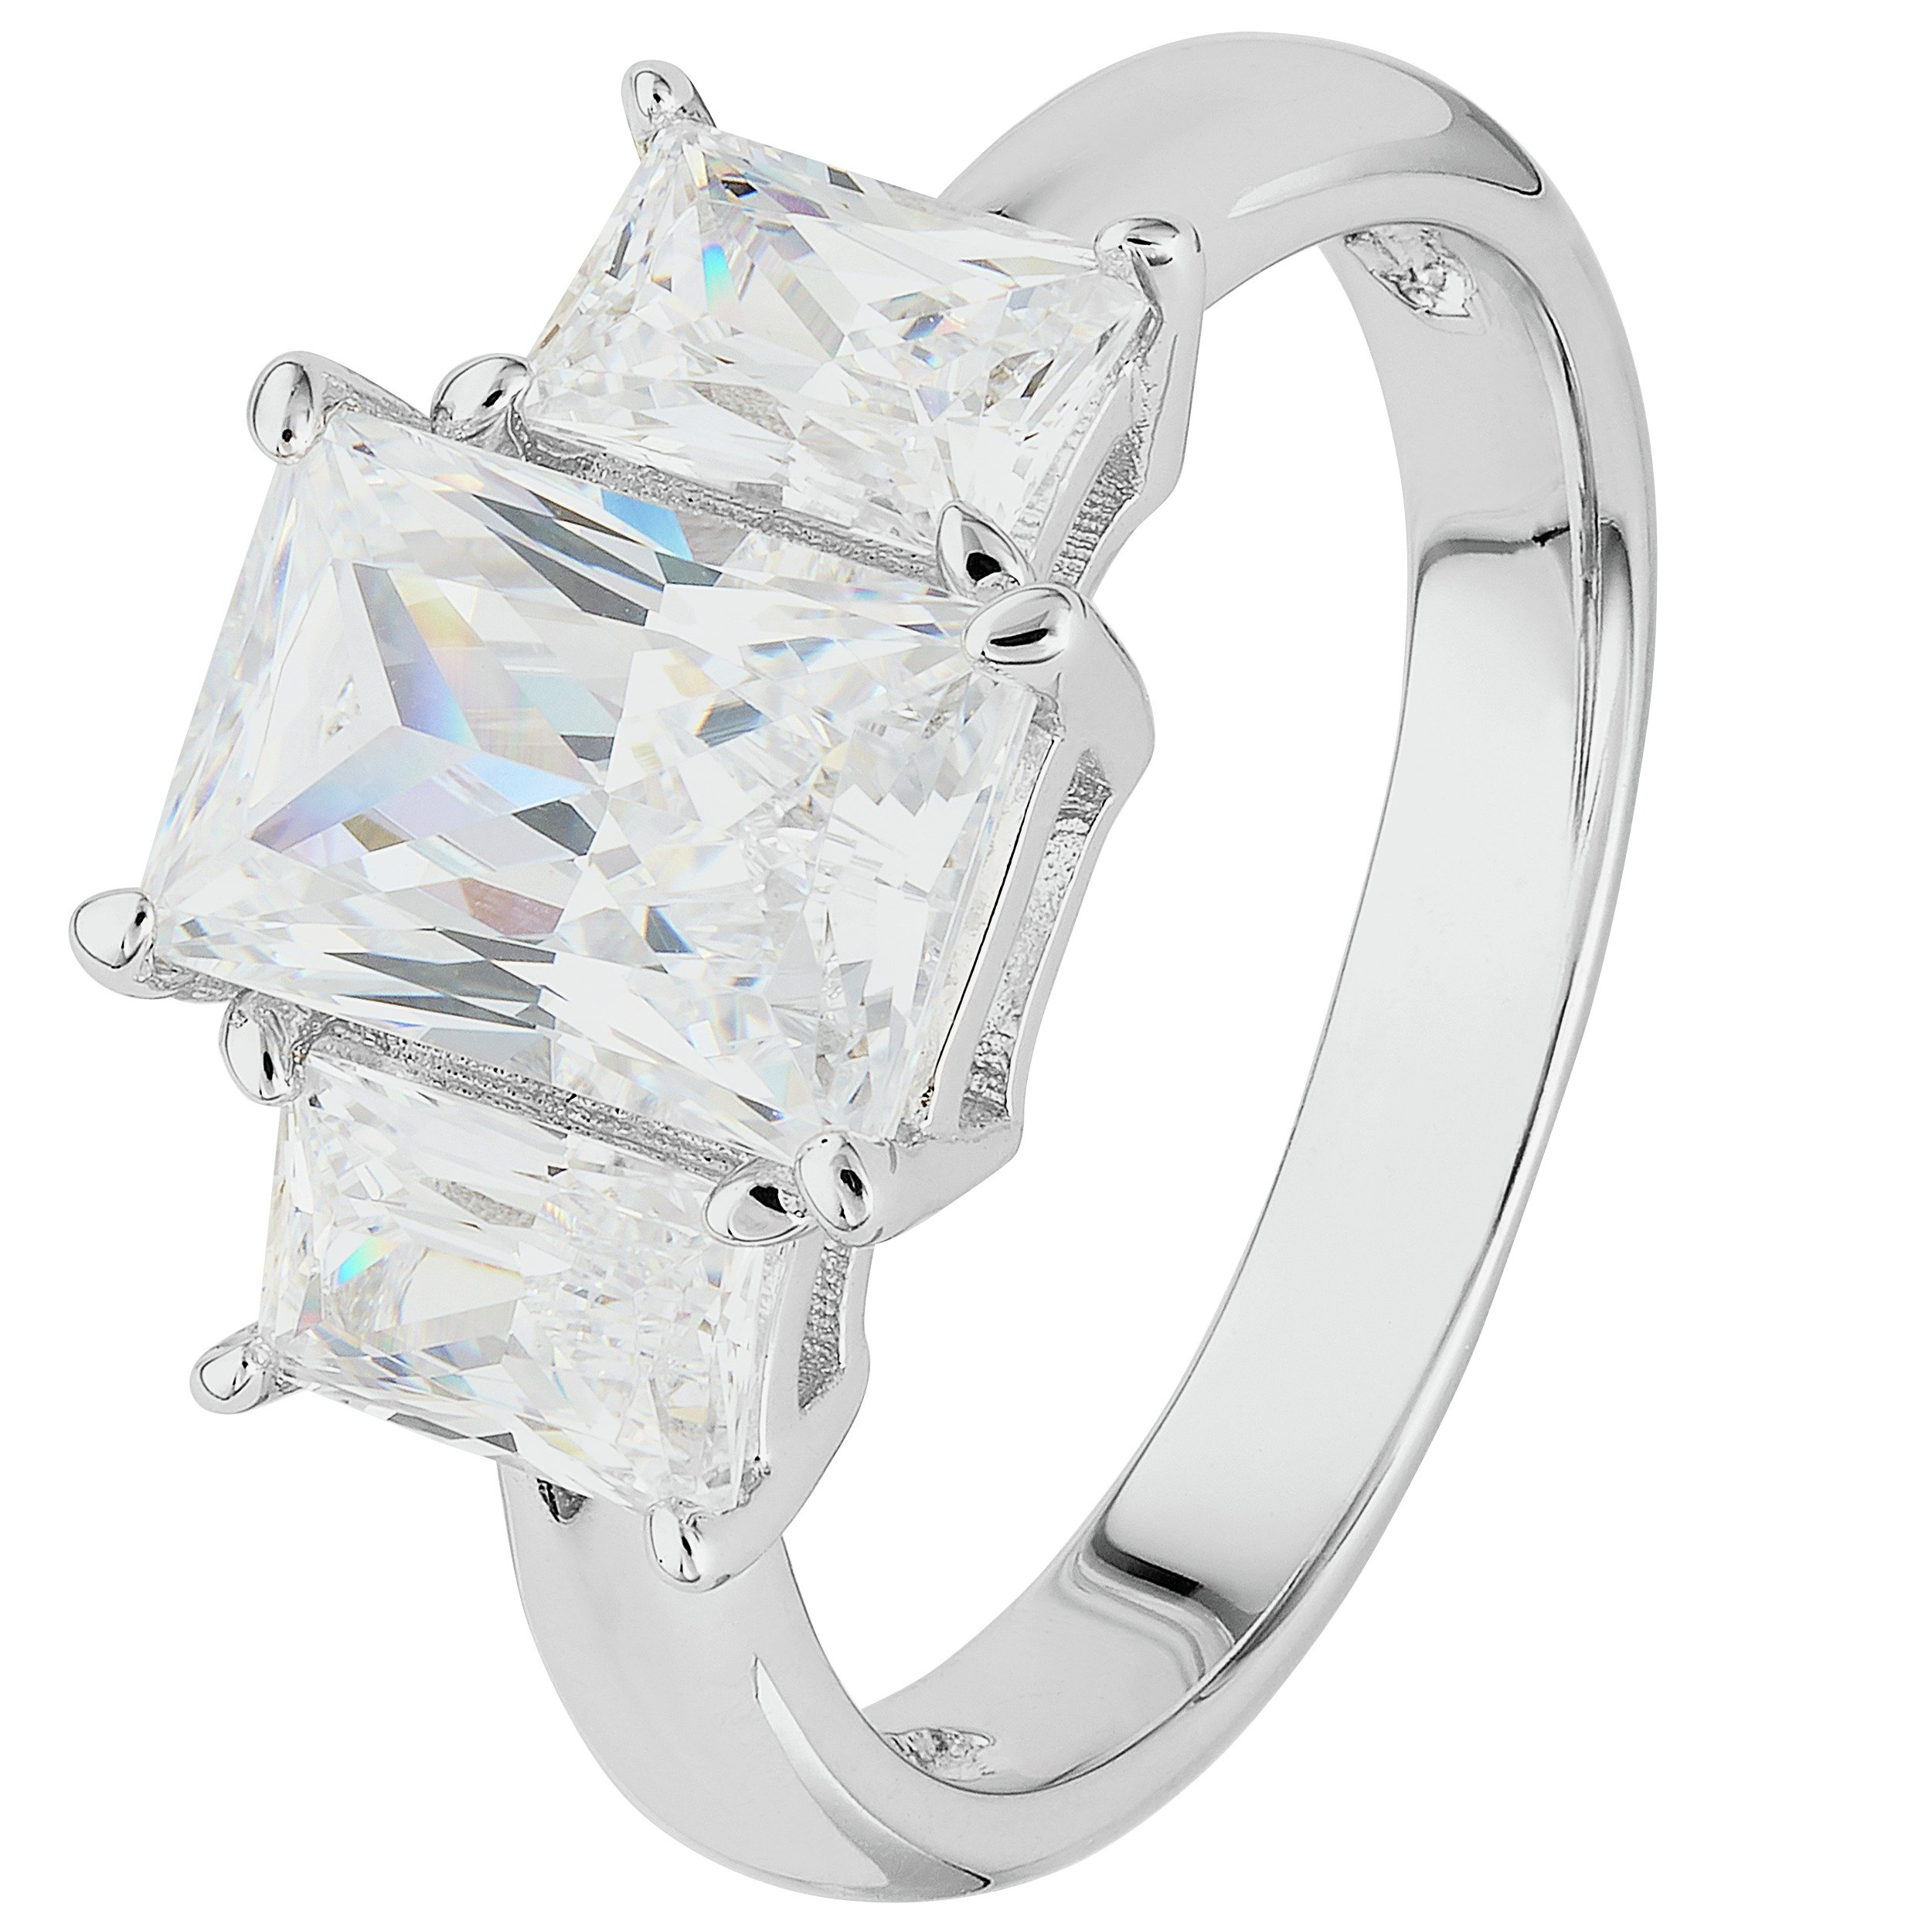 Revere Platinum Plated Silver 3 Stone CZ Baguette Ring